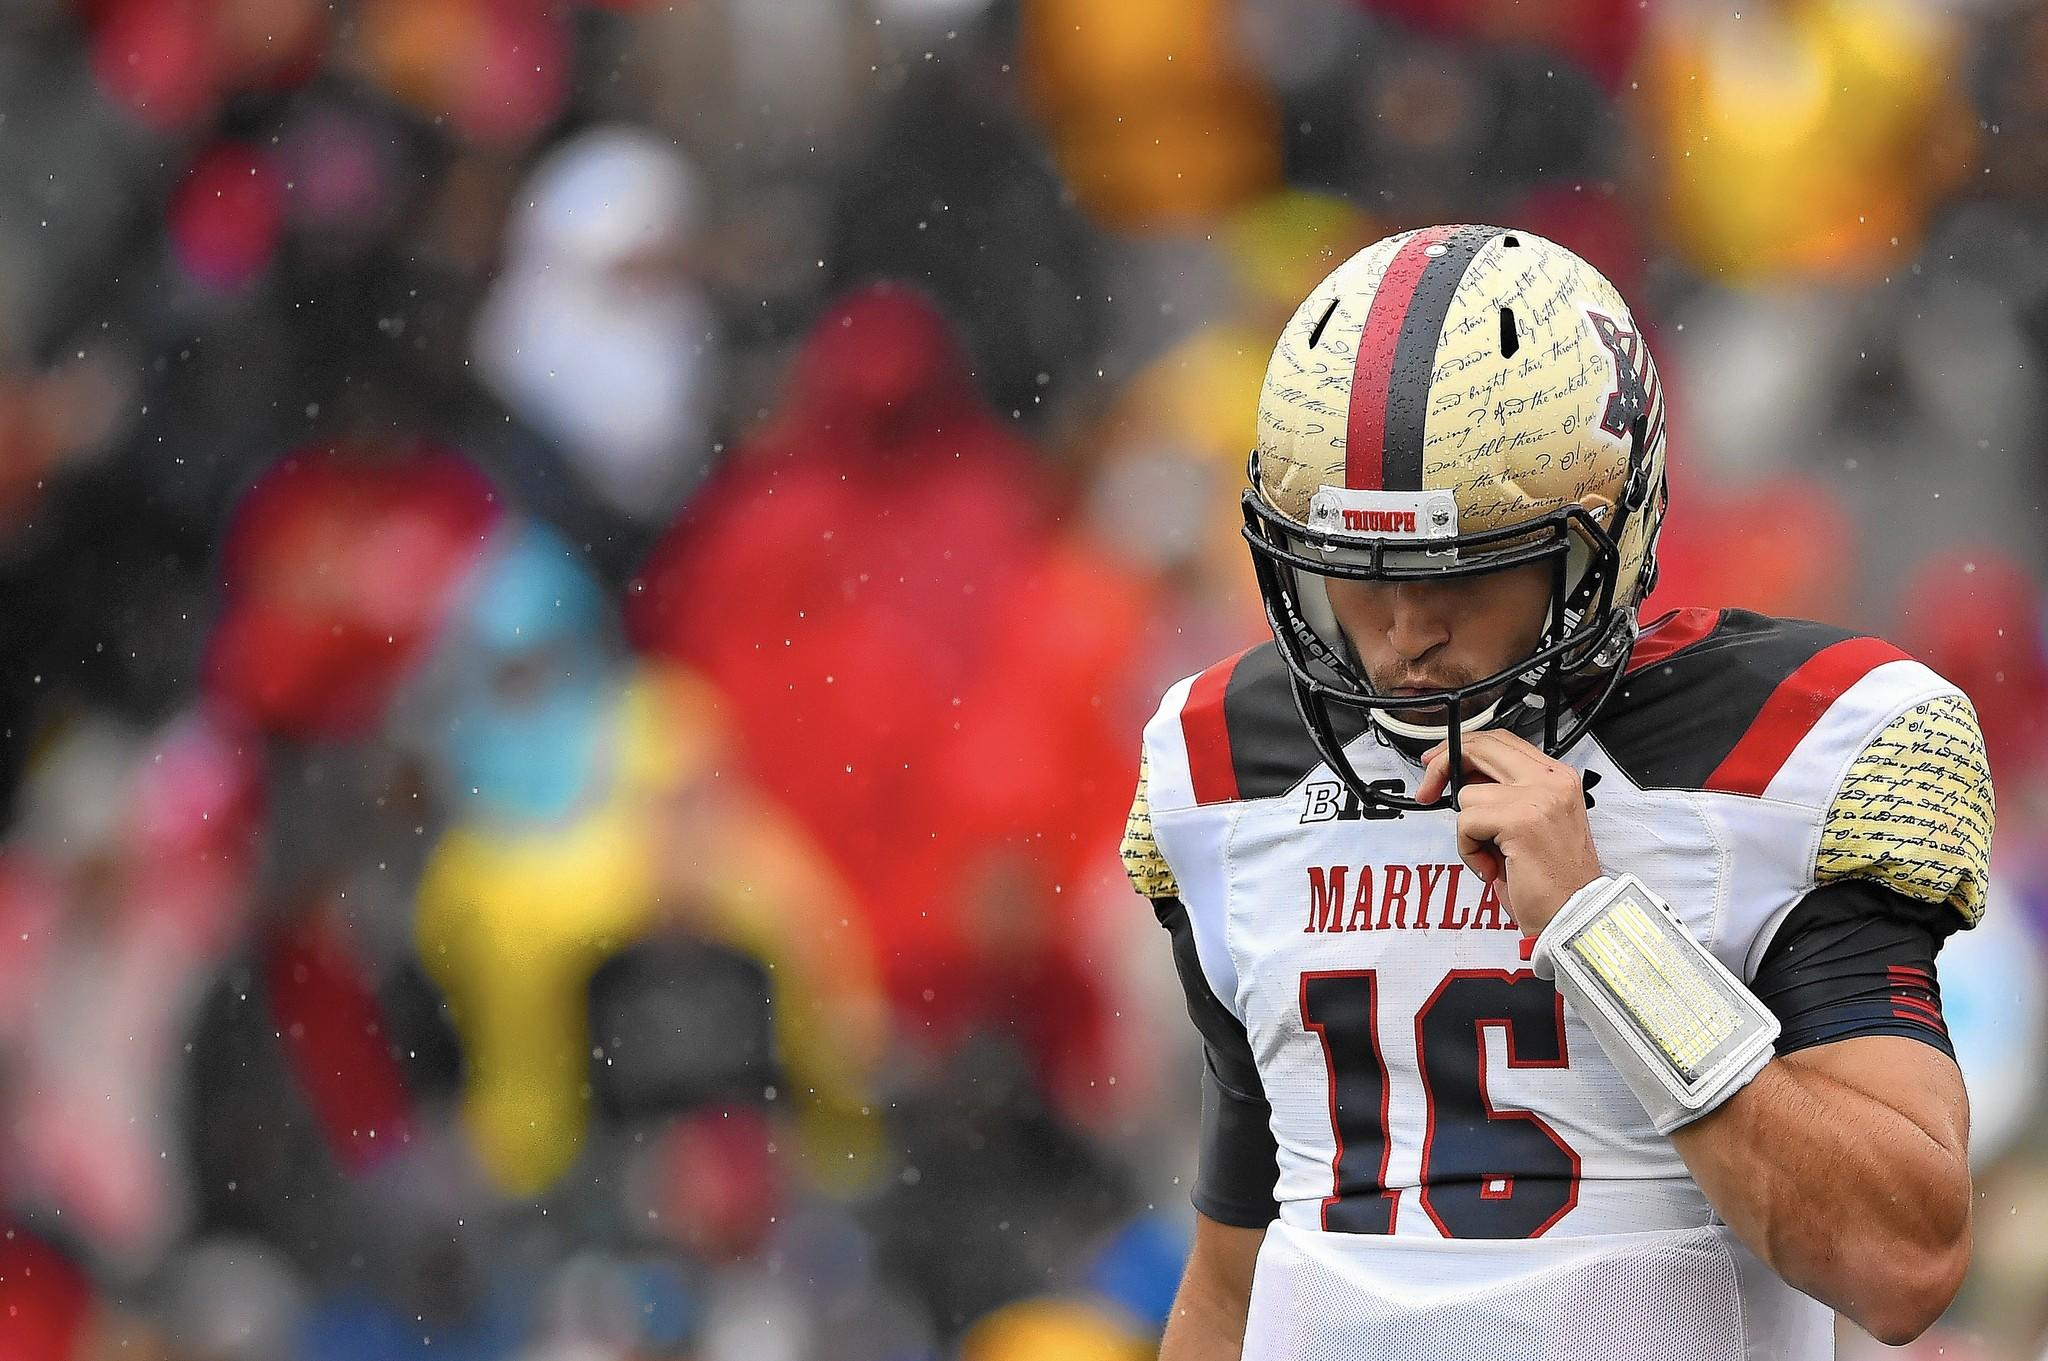 Quarterback C.J. Brown of the Maryland Terrapins reacts in the third quarter against the West Virginia Mountaineers.